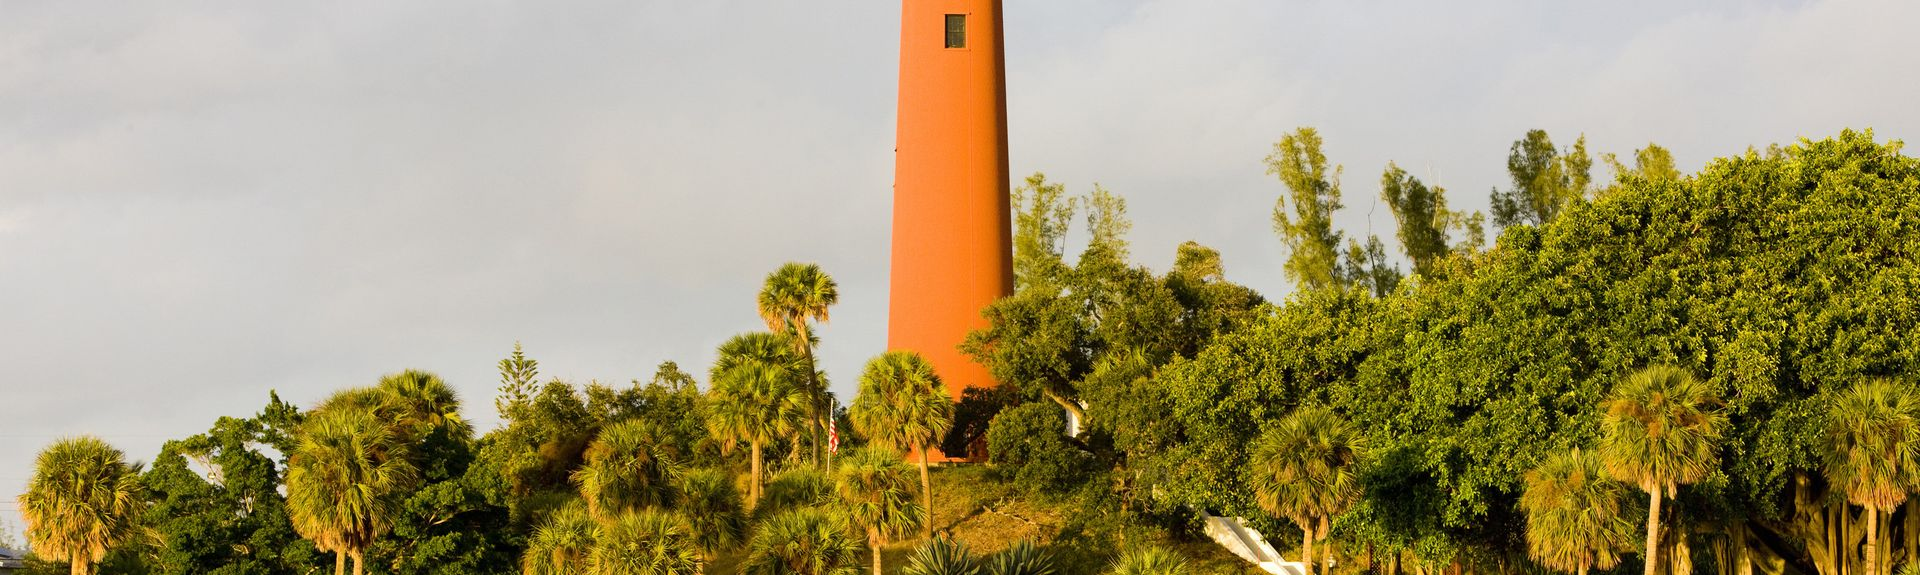 Ponce Inlet, Florida, United States of America